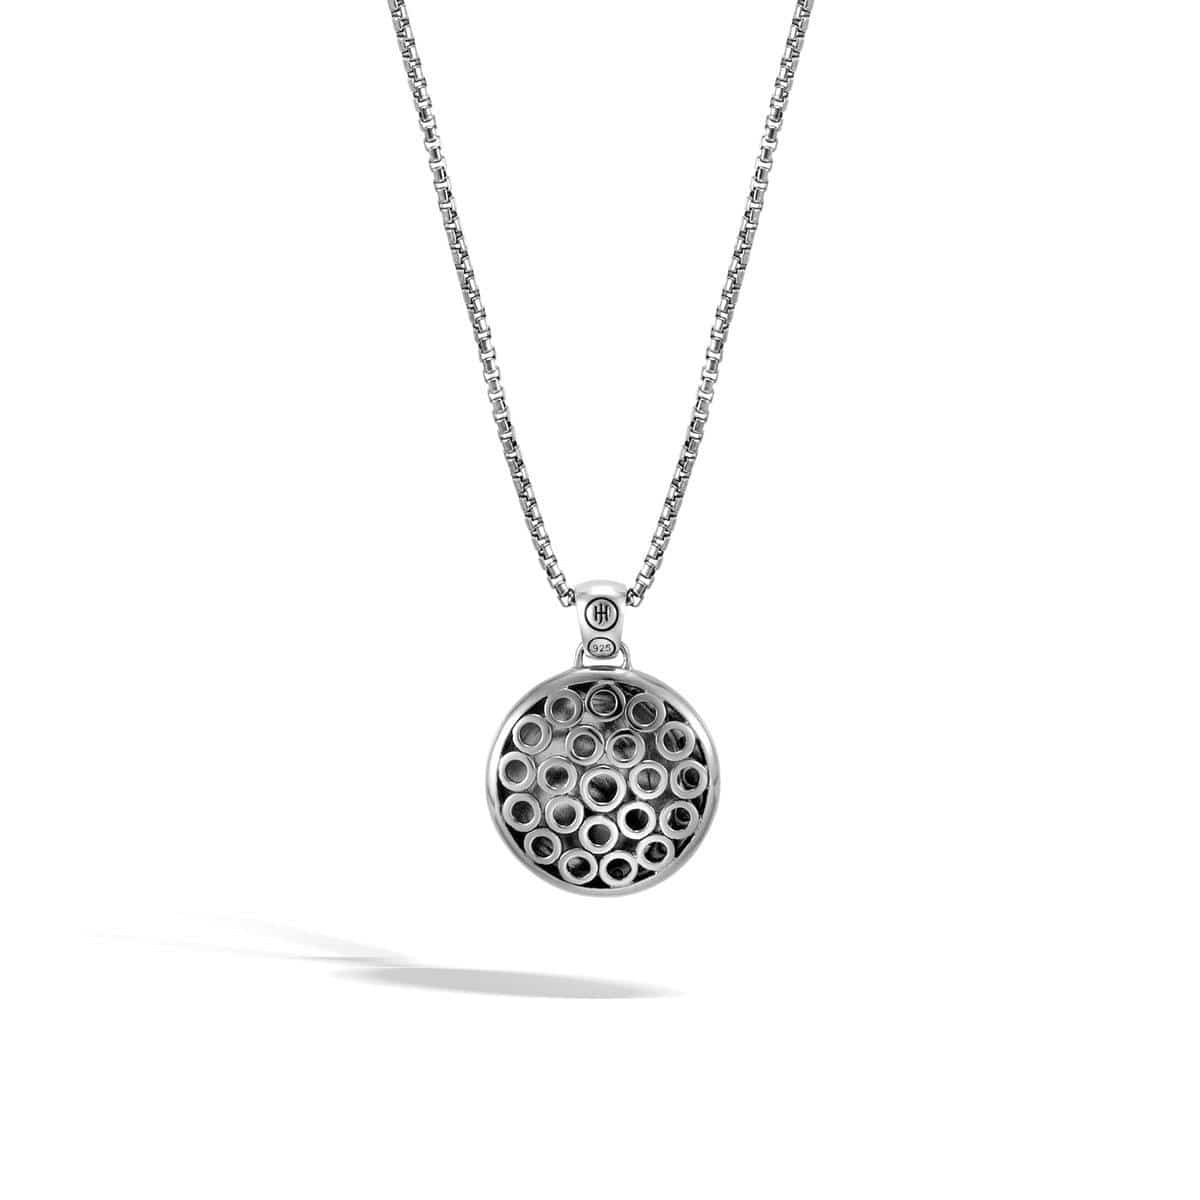 Dot Moon Phase Hammered Pendant Necklace - NB39058-John Hardy-Renee Taylor Gallery